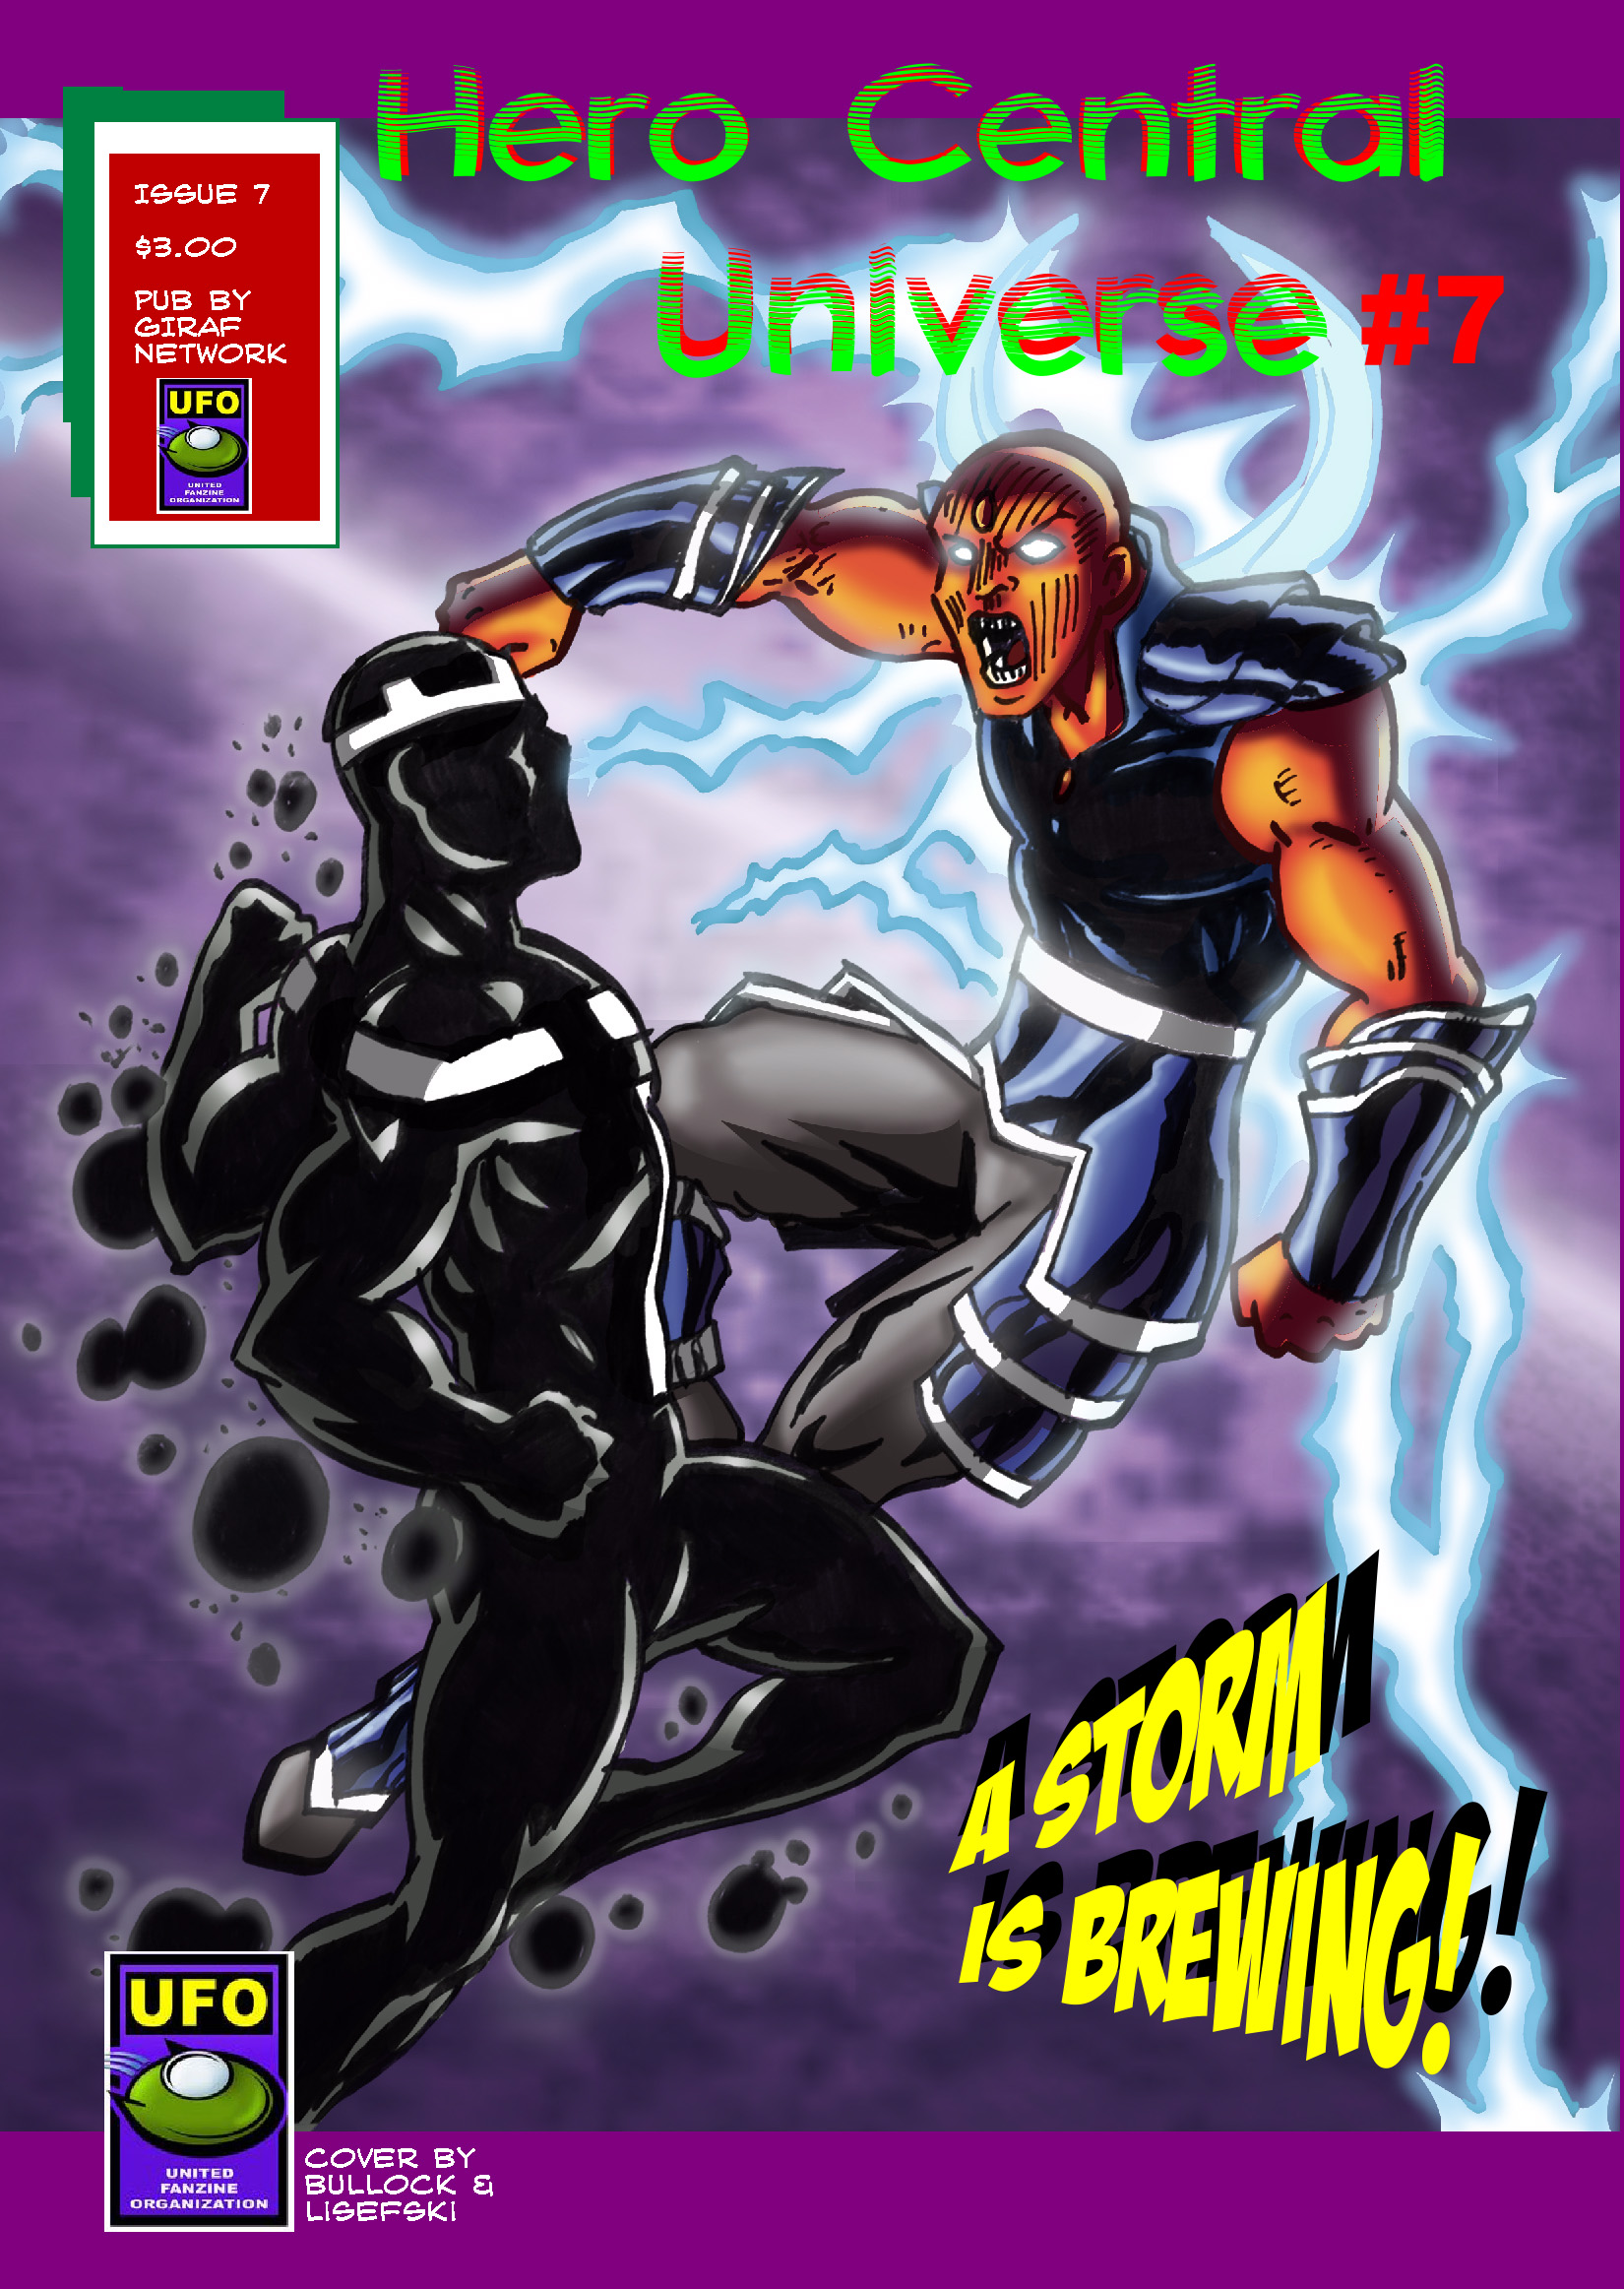 Raiden and his proteges Hero Central, Jr. face off against the dark guardian of the amulet of power known as the White Templar. Available at $3.00 for hard copy, $0.99 for digital copy. Co-published by UFO.